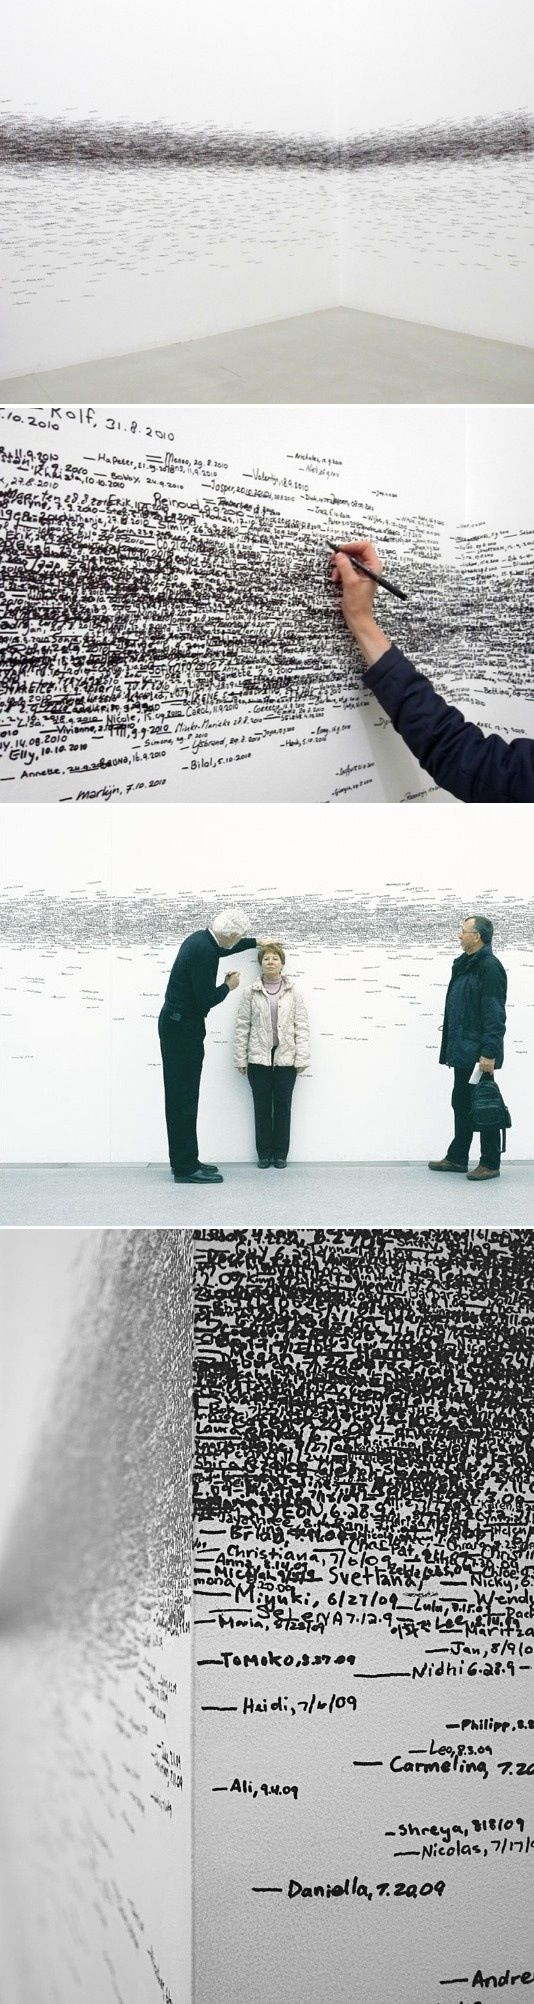 Roman Ondak, Measuring the Universe, 2007. Over the course of the four-month exhibit, attendants marked visitors' first names, height measurements, and the date on which they were recorded. Beginning as an empty white space, over time the gallery accumulated the traces of thousands of visitors.